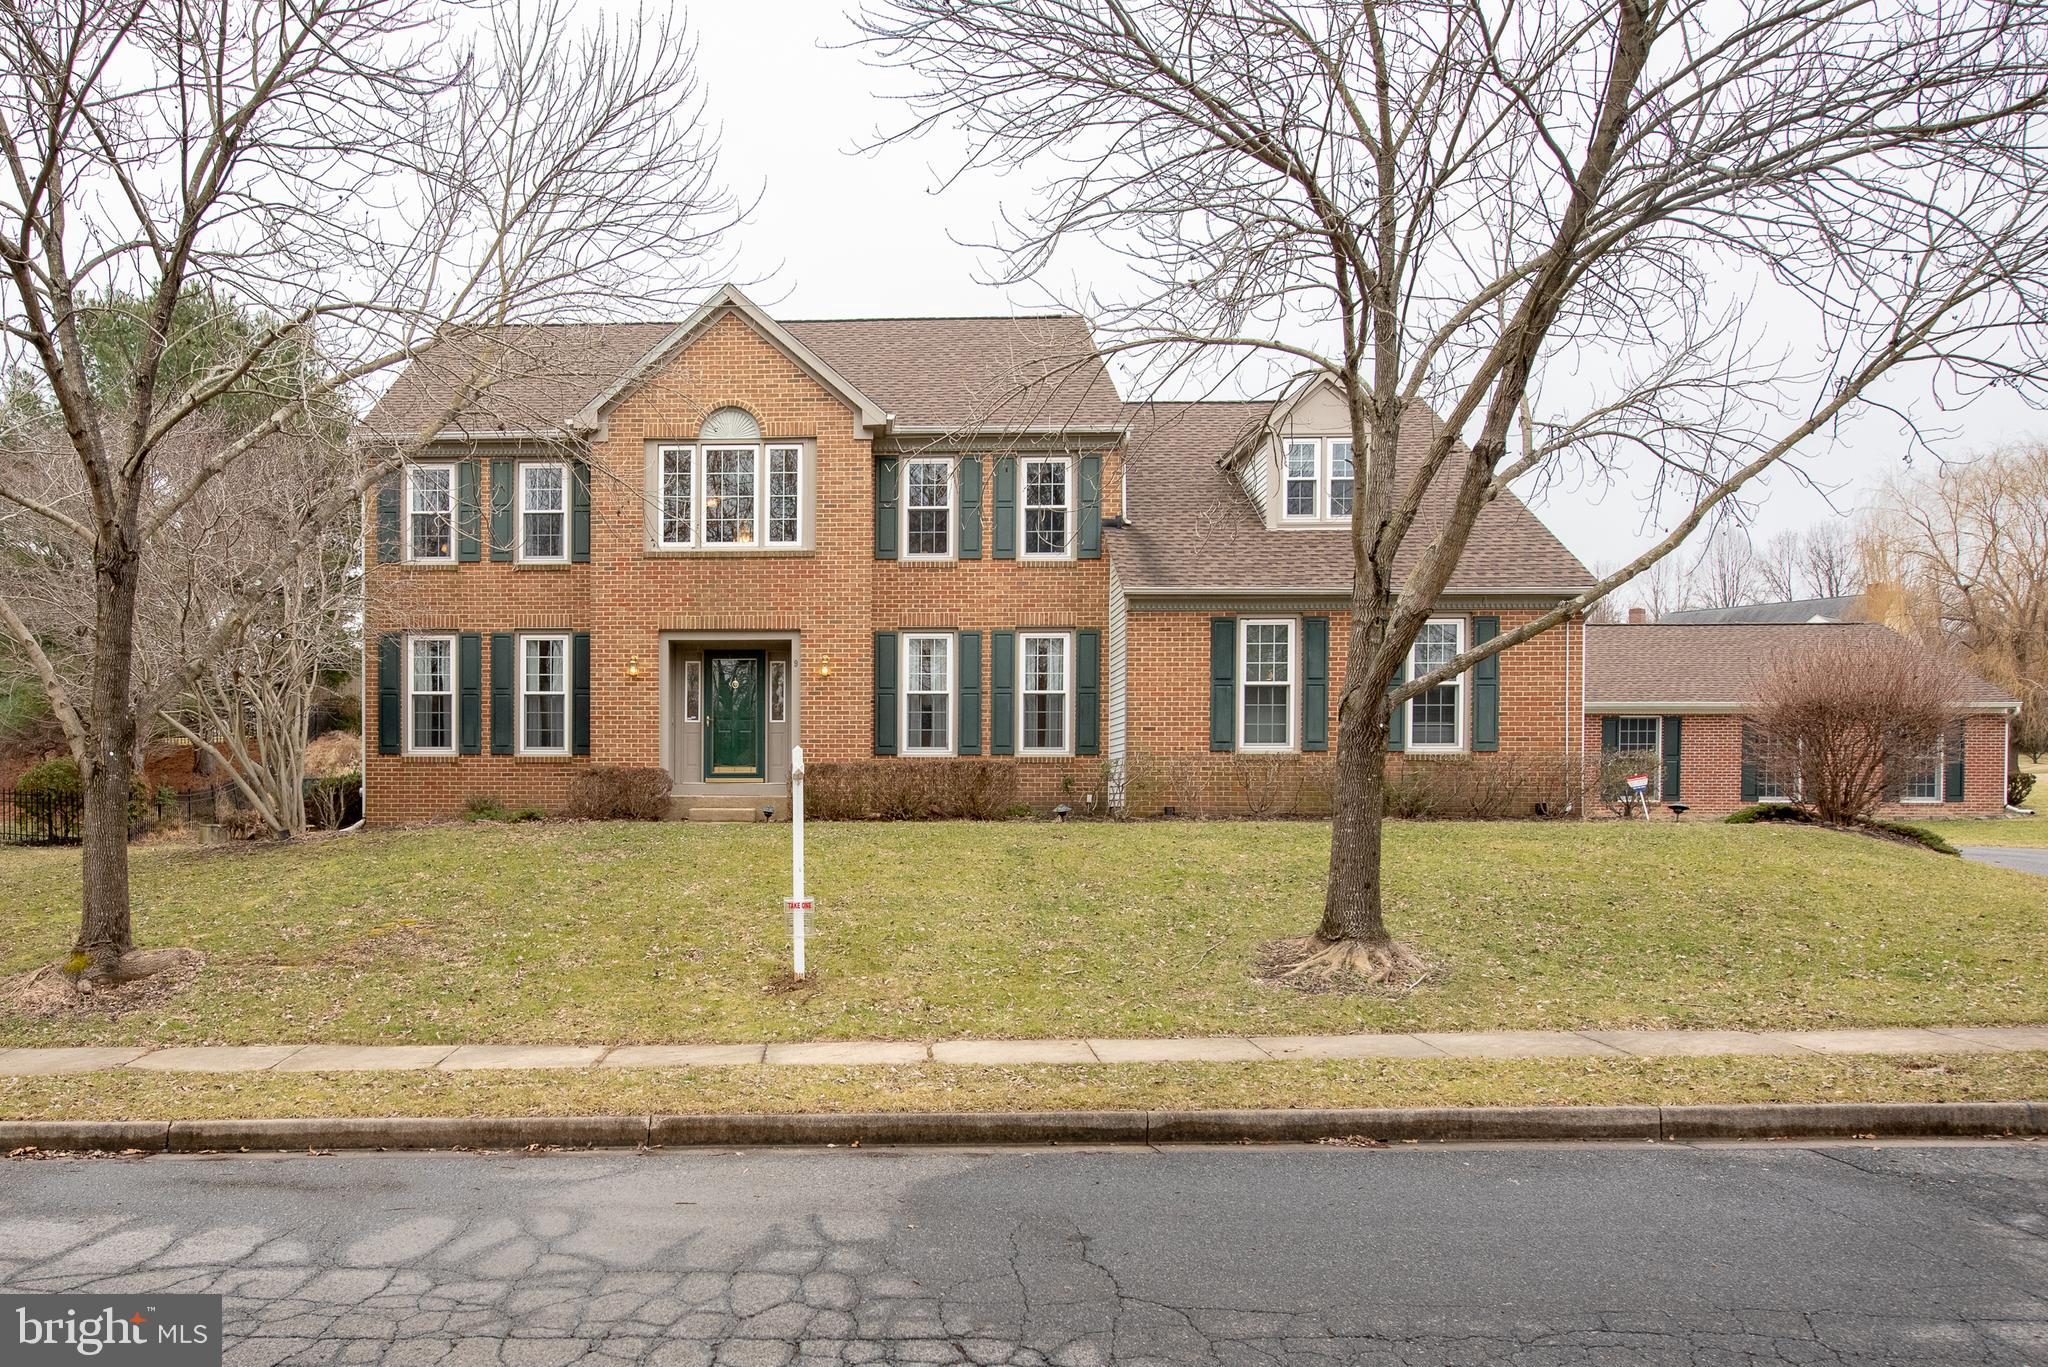 9 STONE SPRING COURT, CATONSVILLE, MD 21228